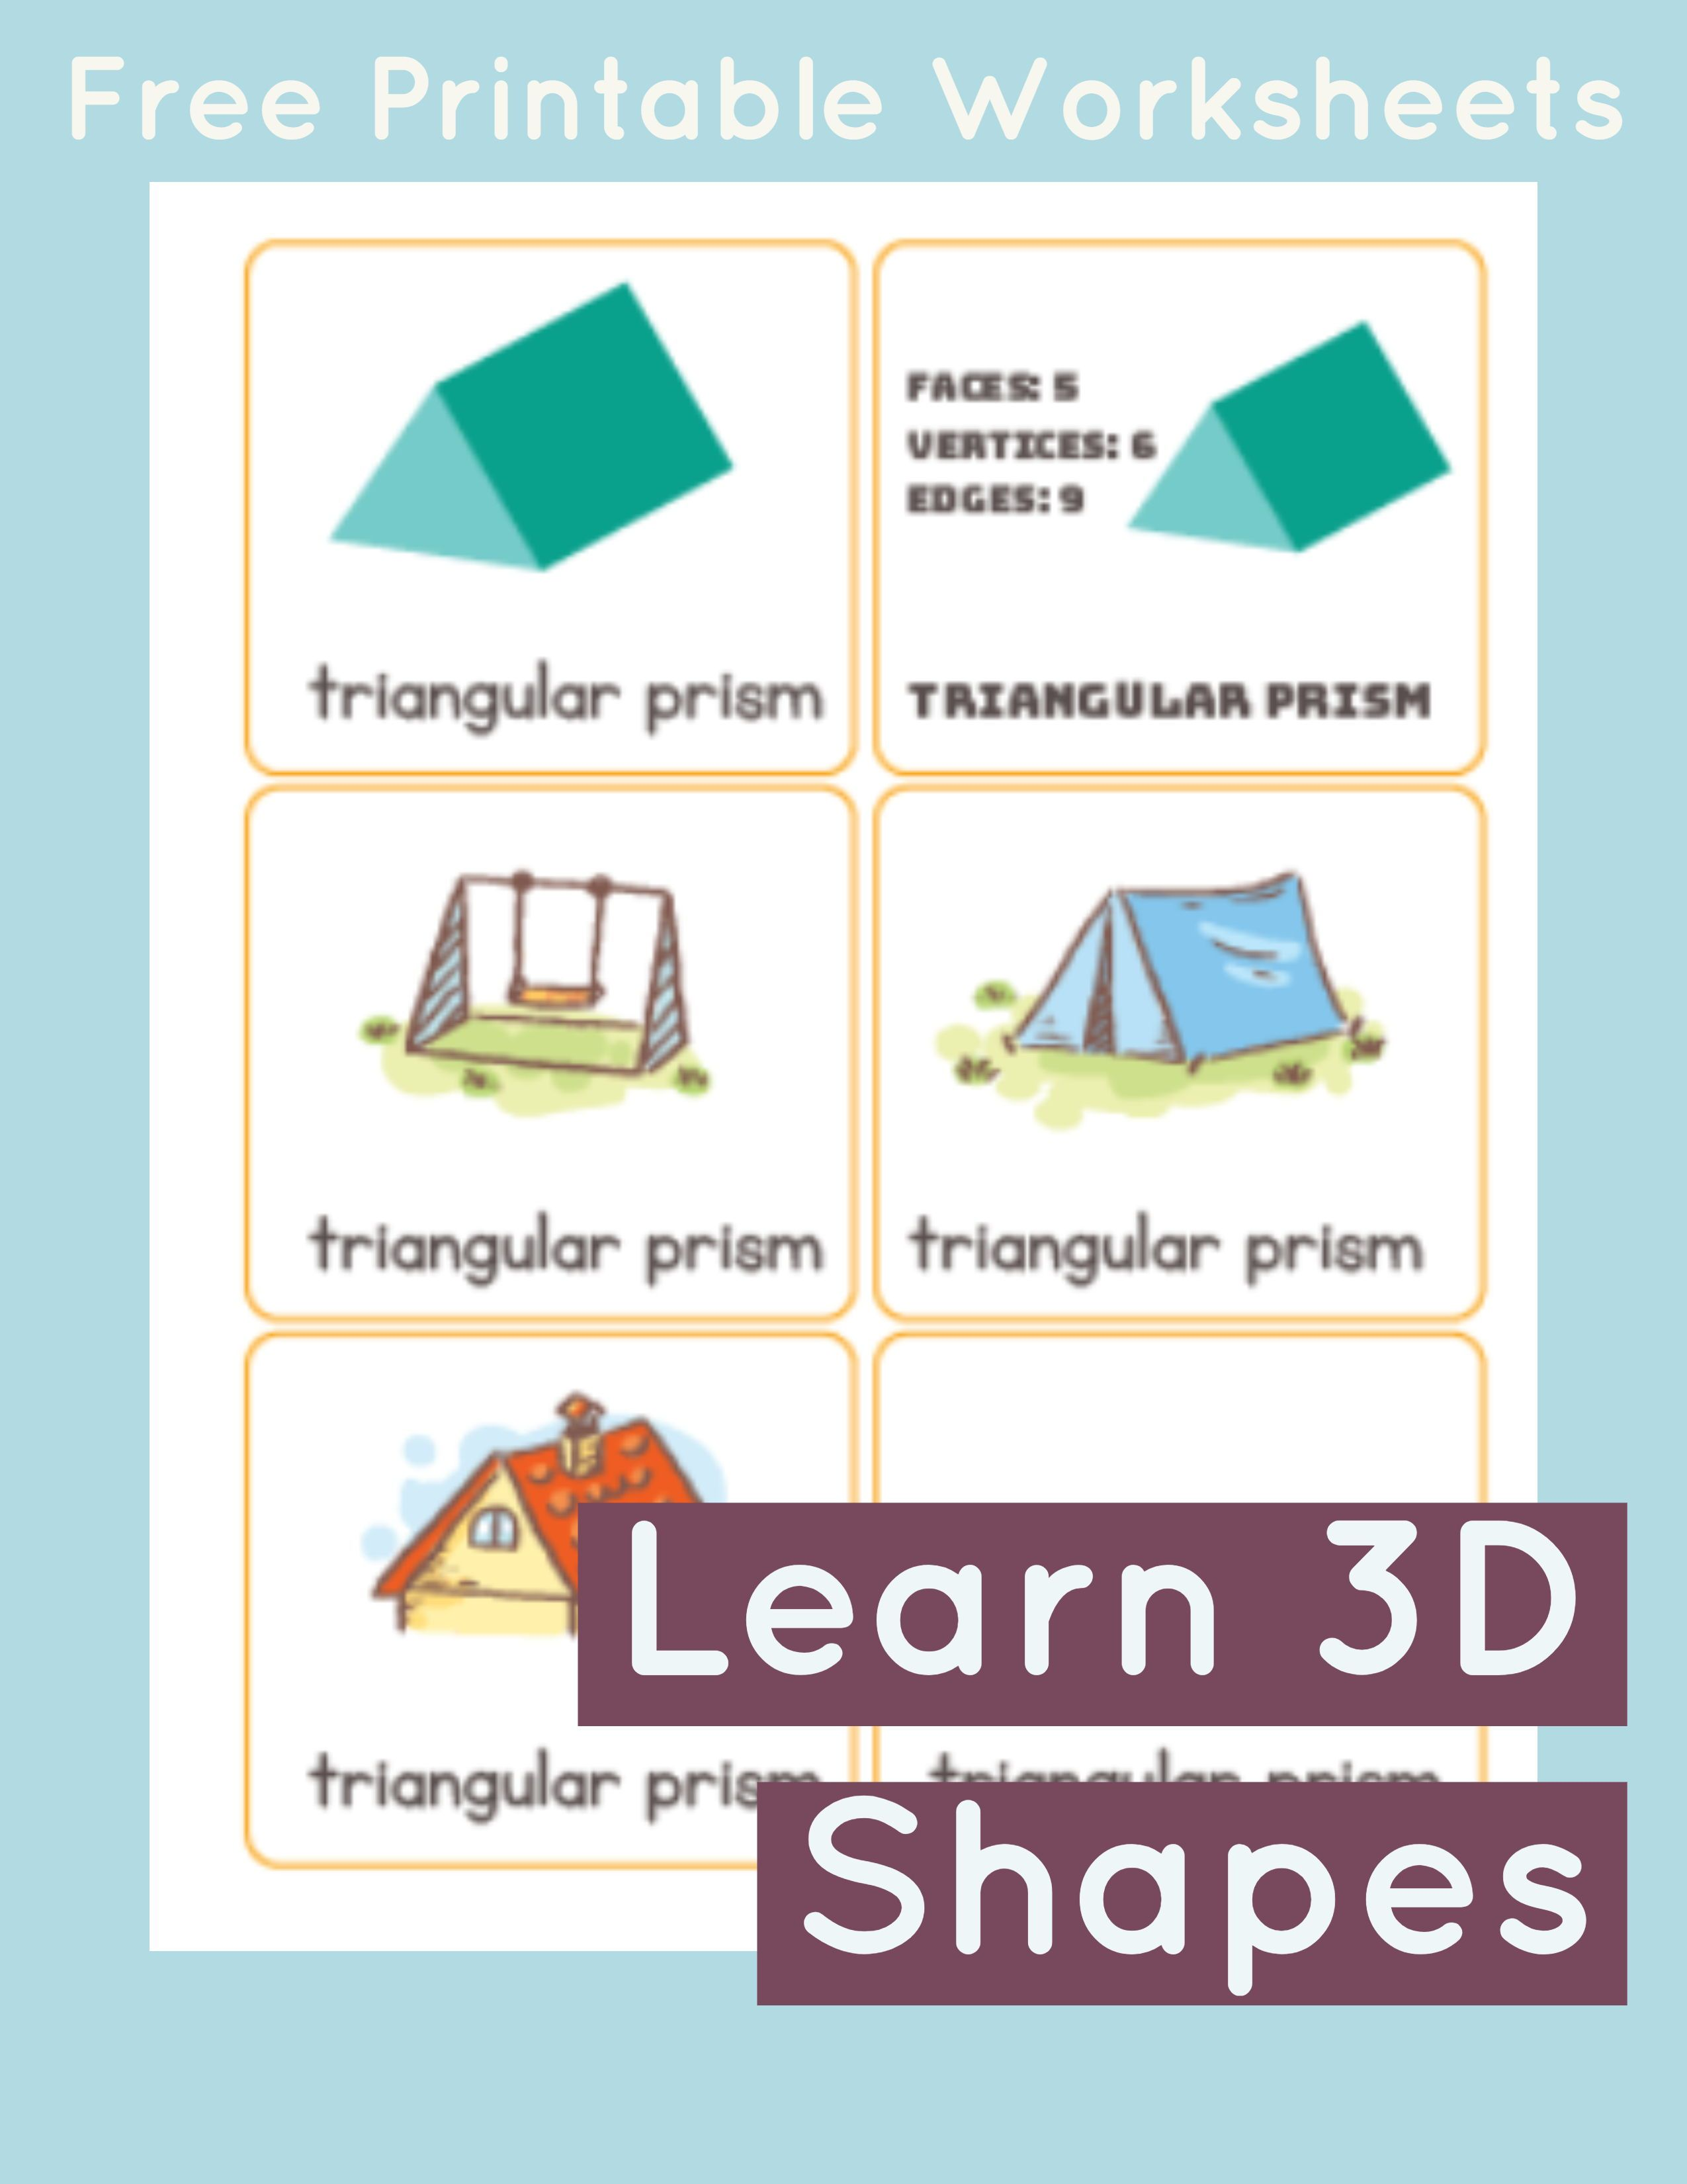 medium resolution of Worksheet On Solid Shapes For Grade 5   Printable Worksheets and Activities  for Teachers